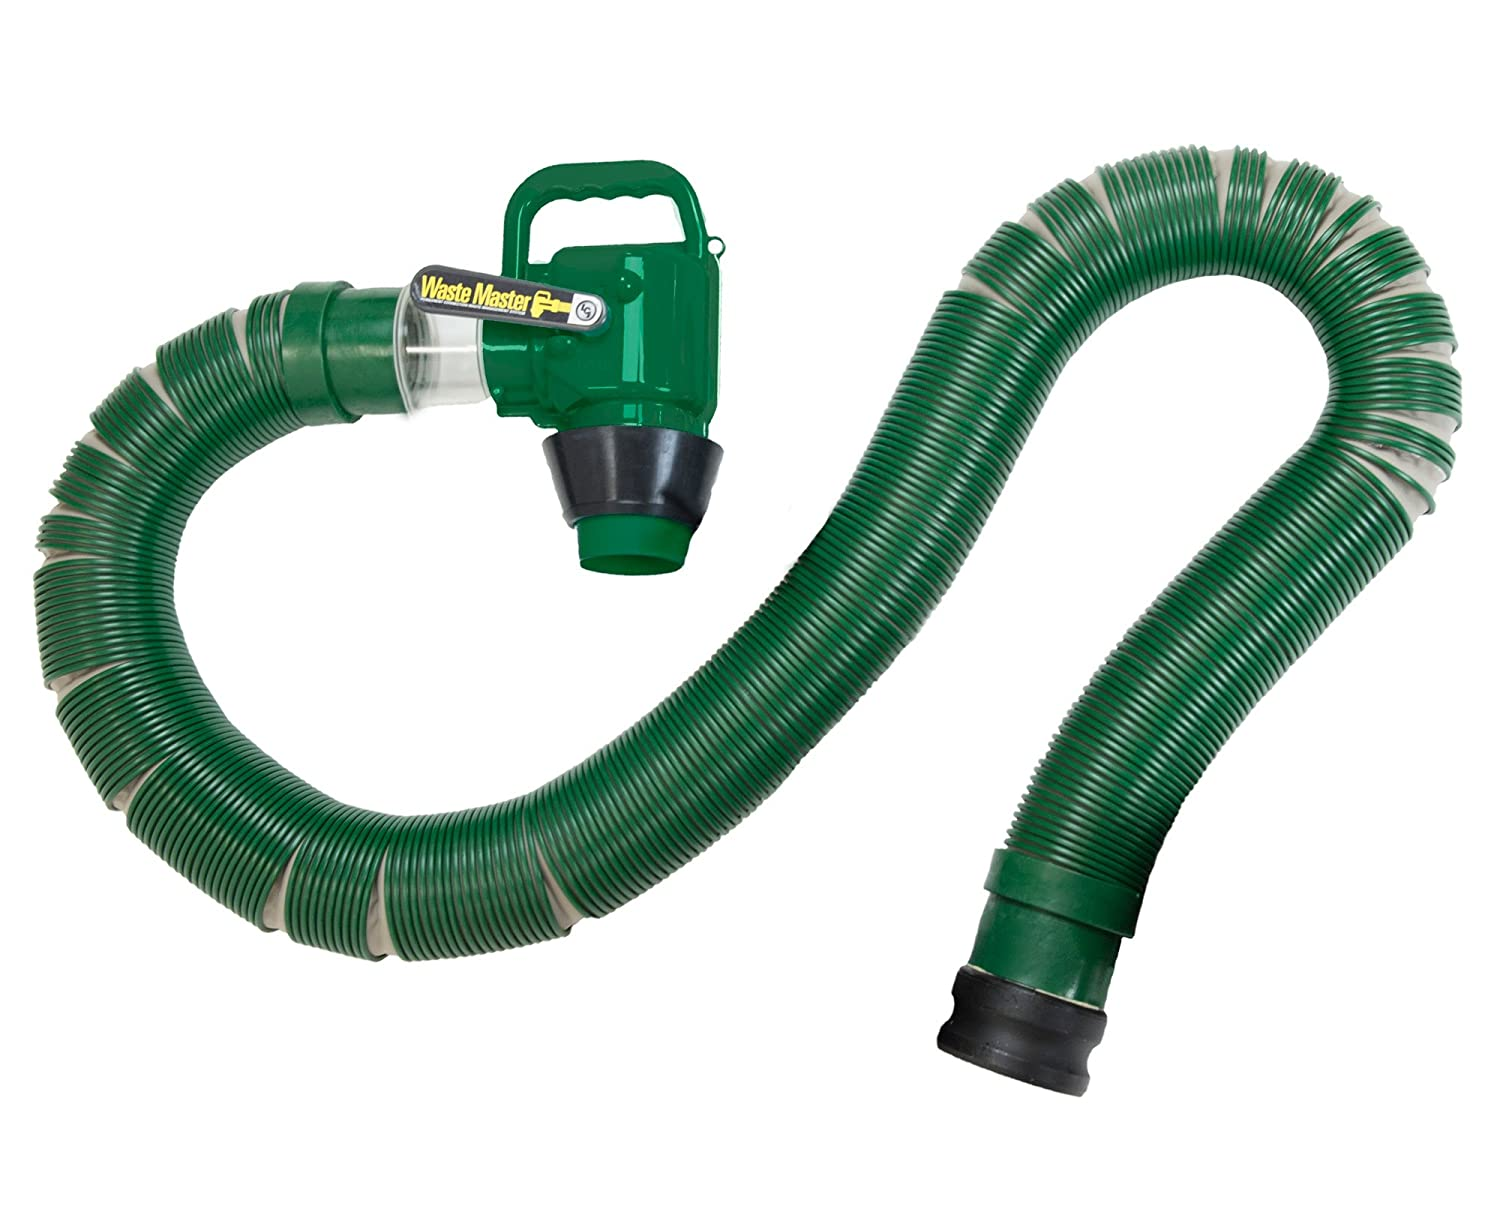 Lippert Waste Master 20' Extended RV Sewer Hose}